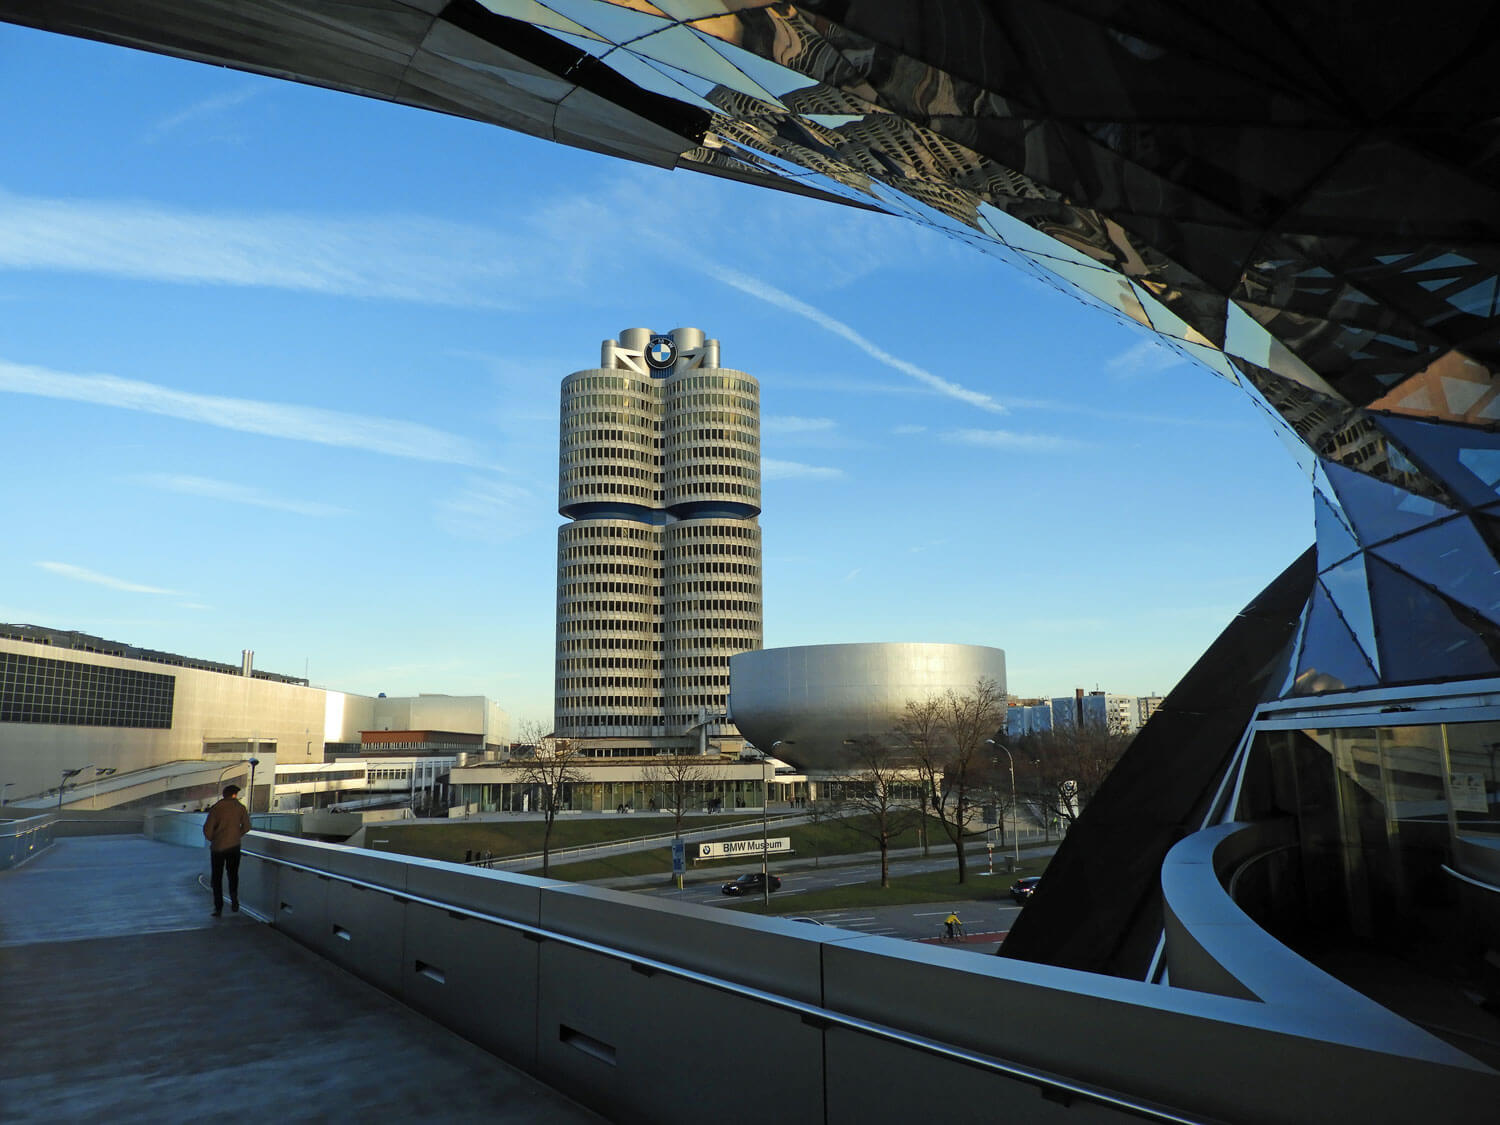 germany-munich-bmw-welt-museum-walkway.jpg